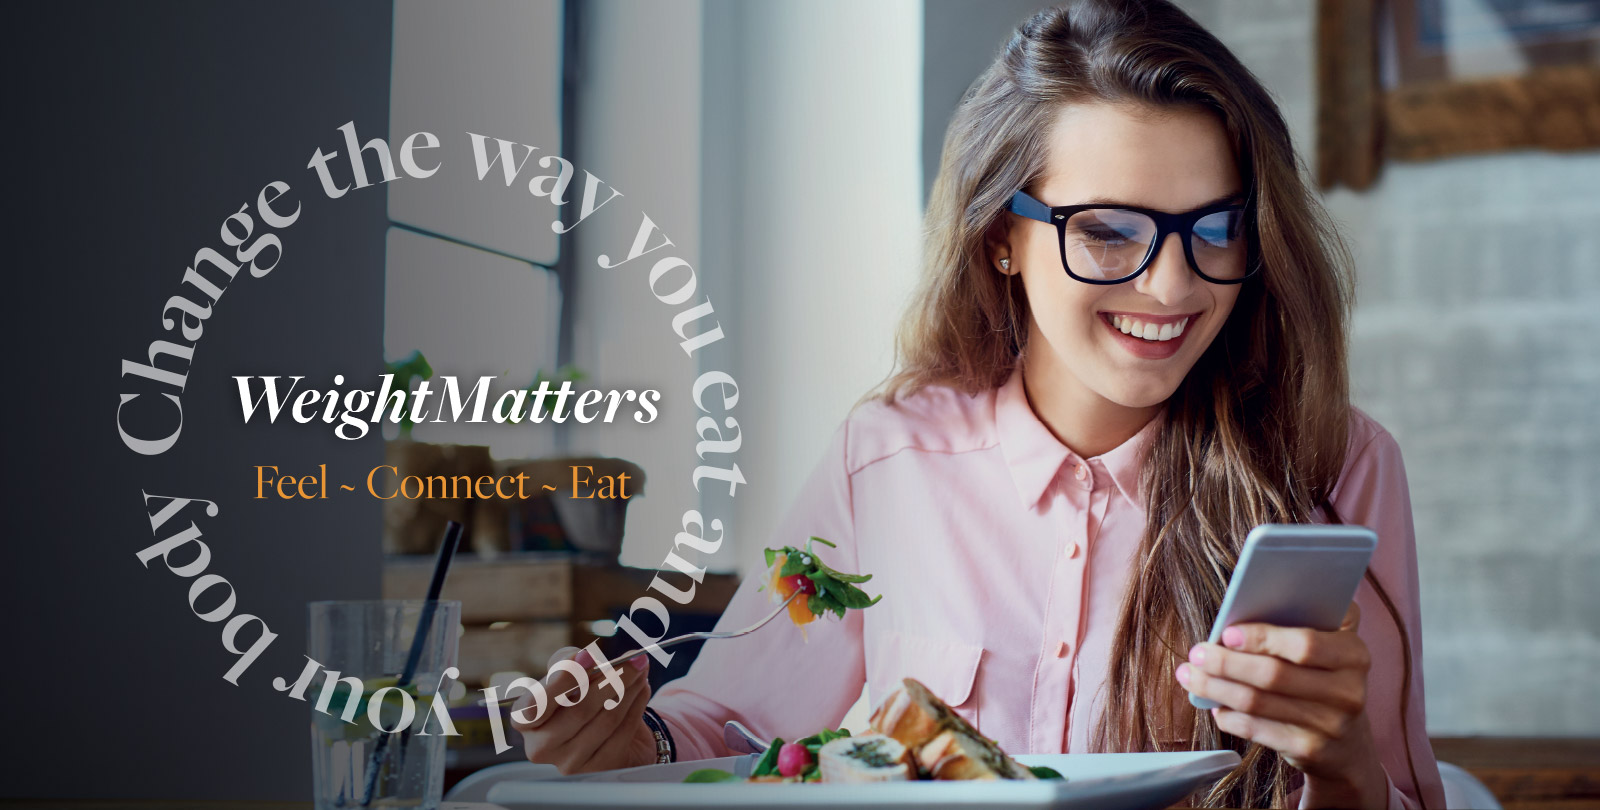 WeightMatters - Feel - Connect - Eat